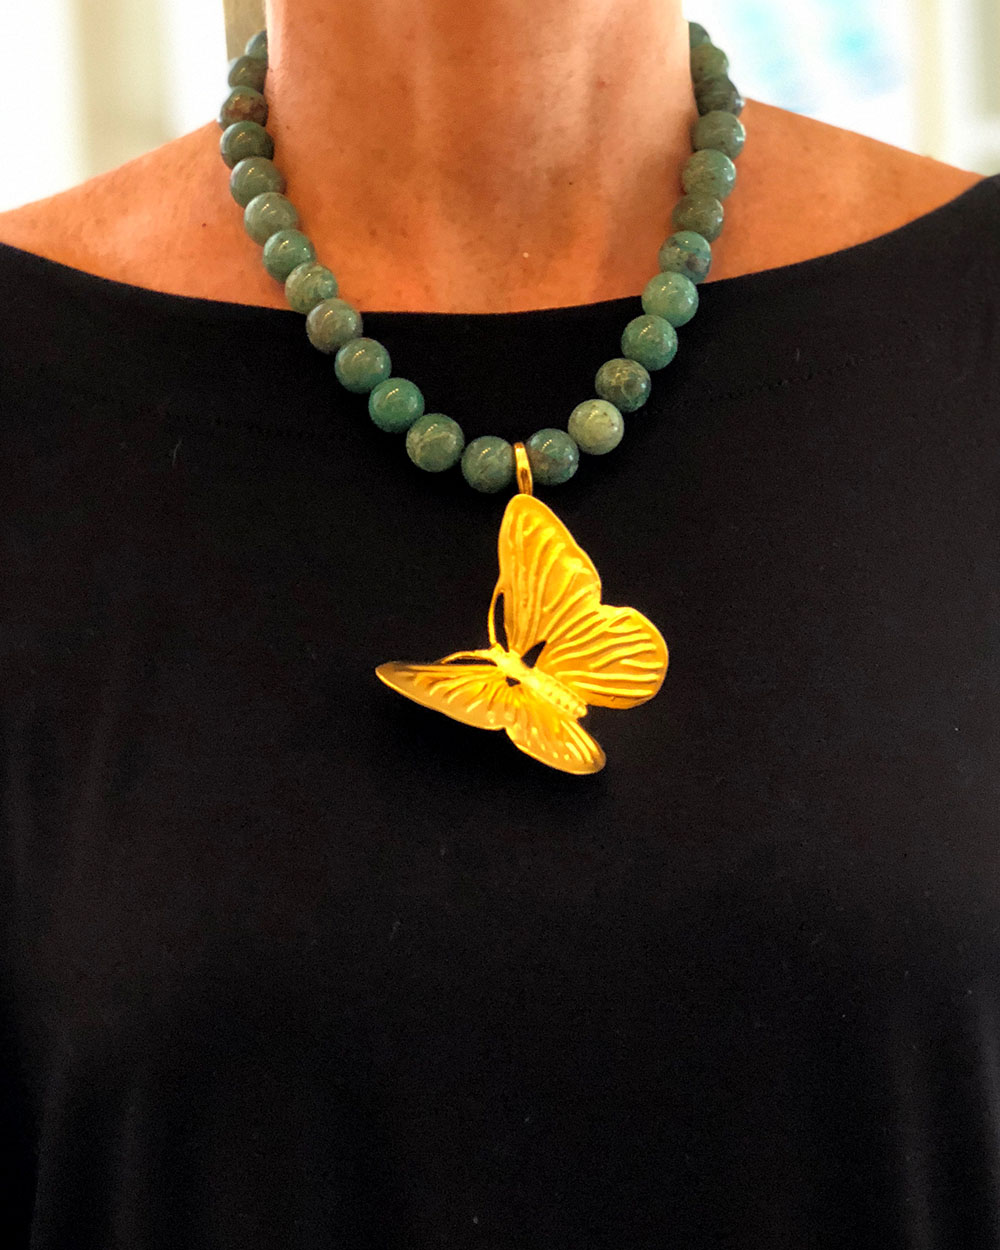 a-home-summit-tommy-mitchell-butterfly-necklace.jpg